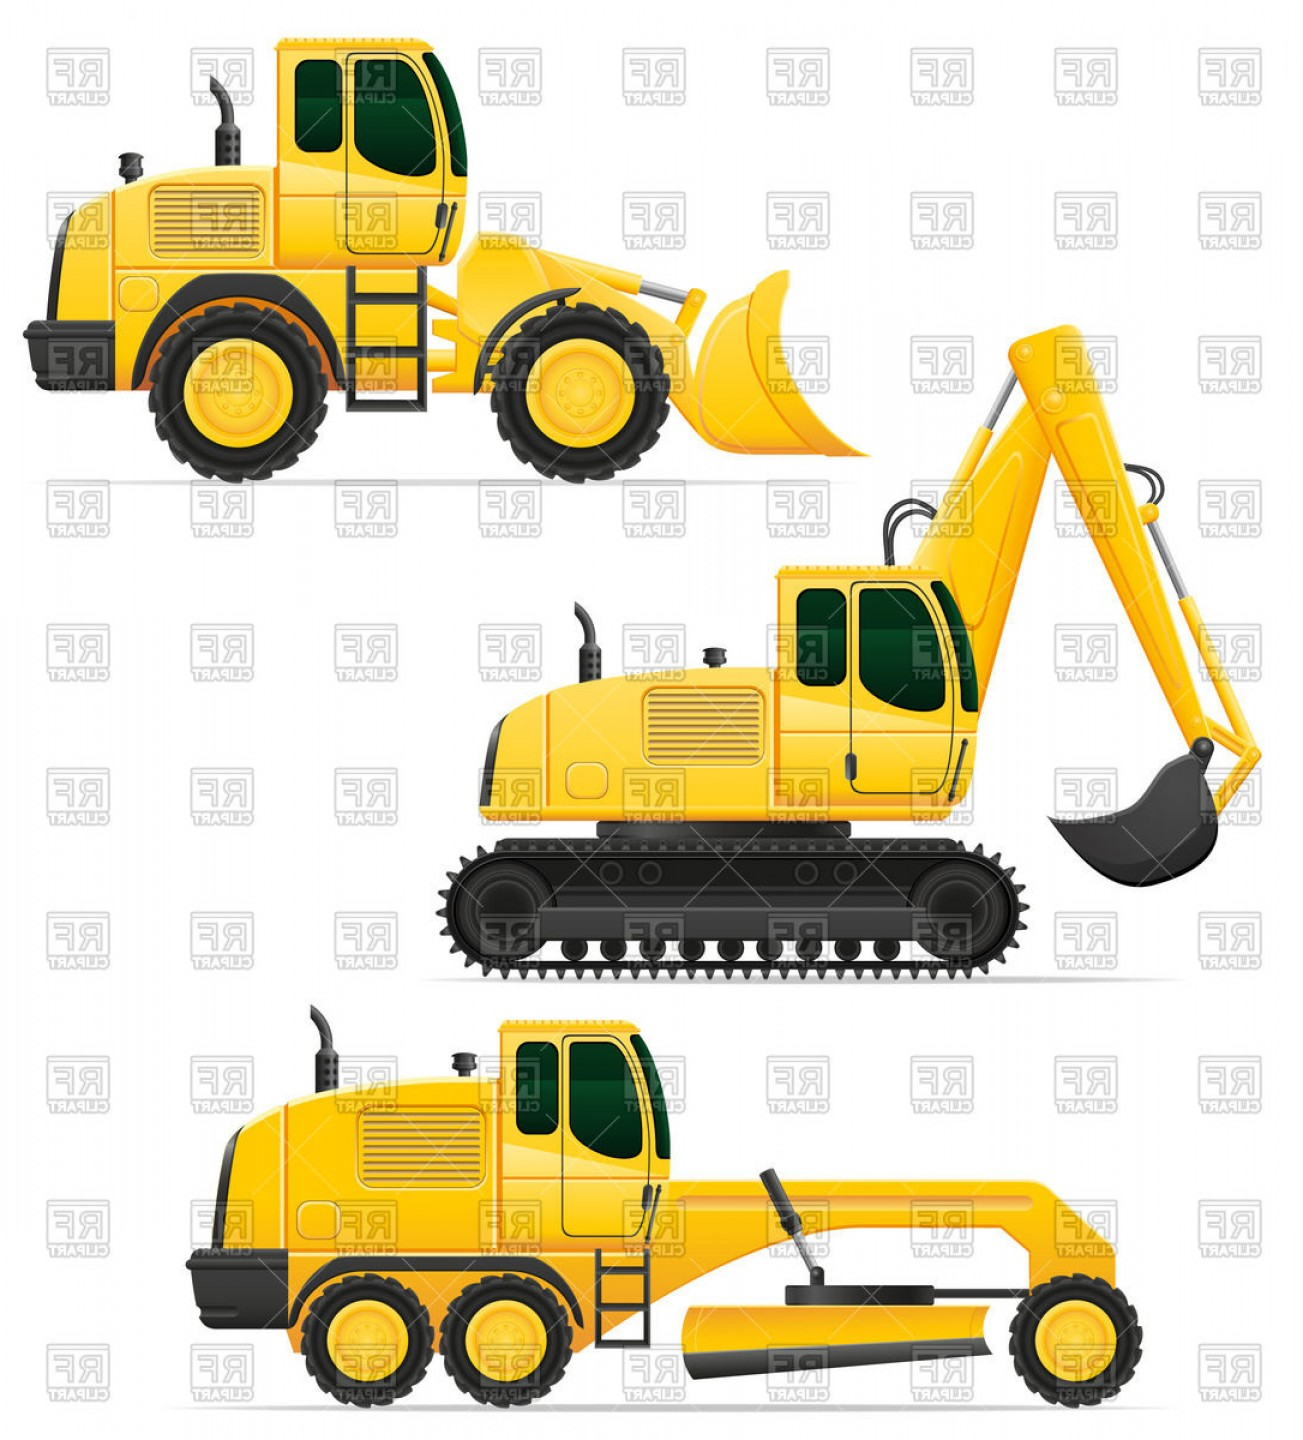 Construction machinery clipart jpg black and white stock Construction Machinery Dozer Excavator Asphalt Paver And Tractor ... jpg black and white stock